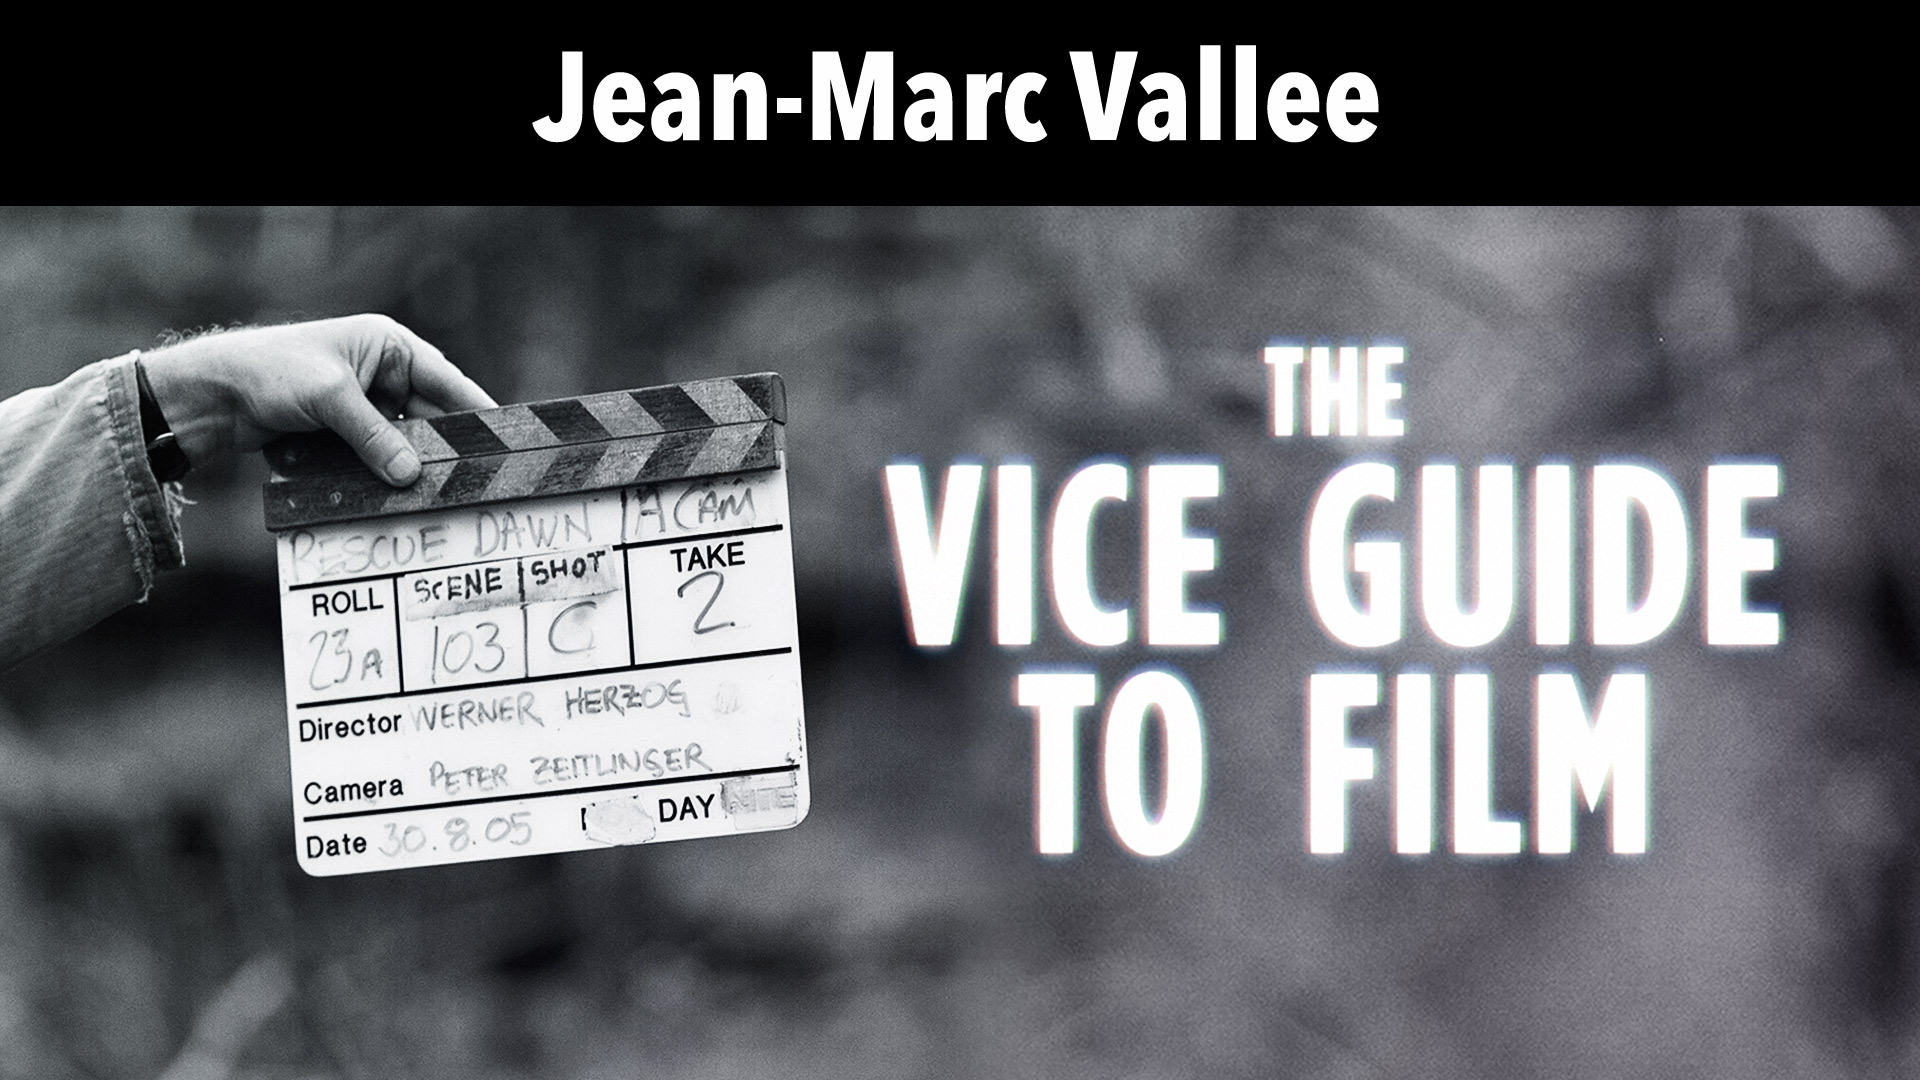 Jean-marc Vallee: Vice Guide To Film